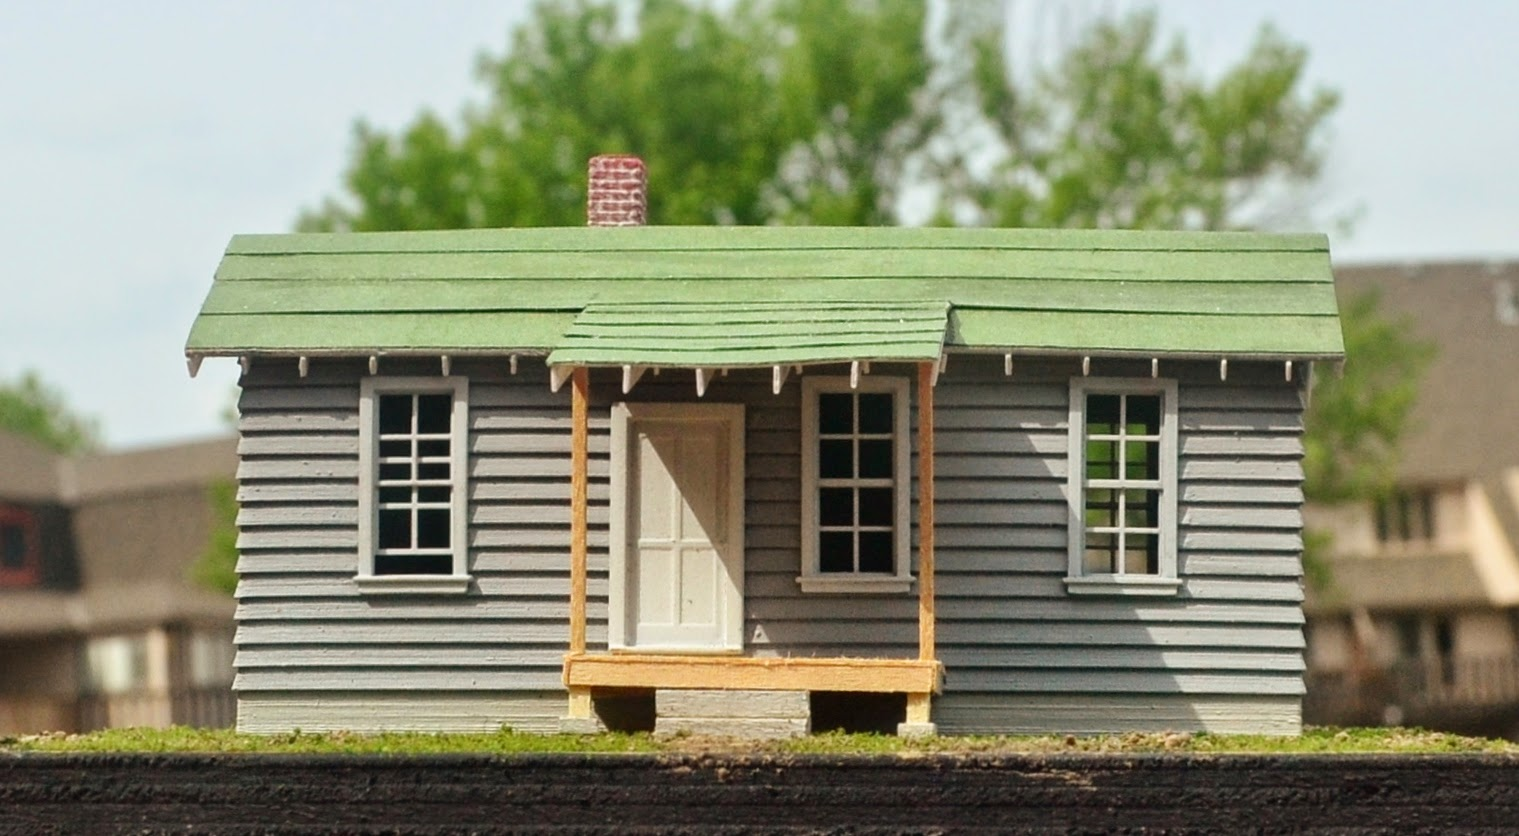 Nirvana valley model railroad frisco section house 3d - Printable ho scale building interiors ...